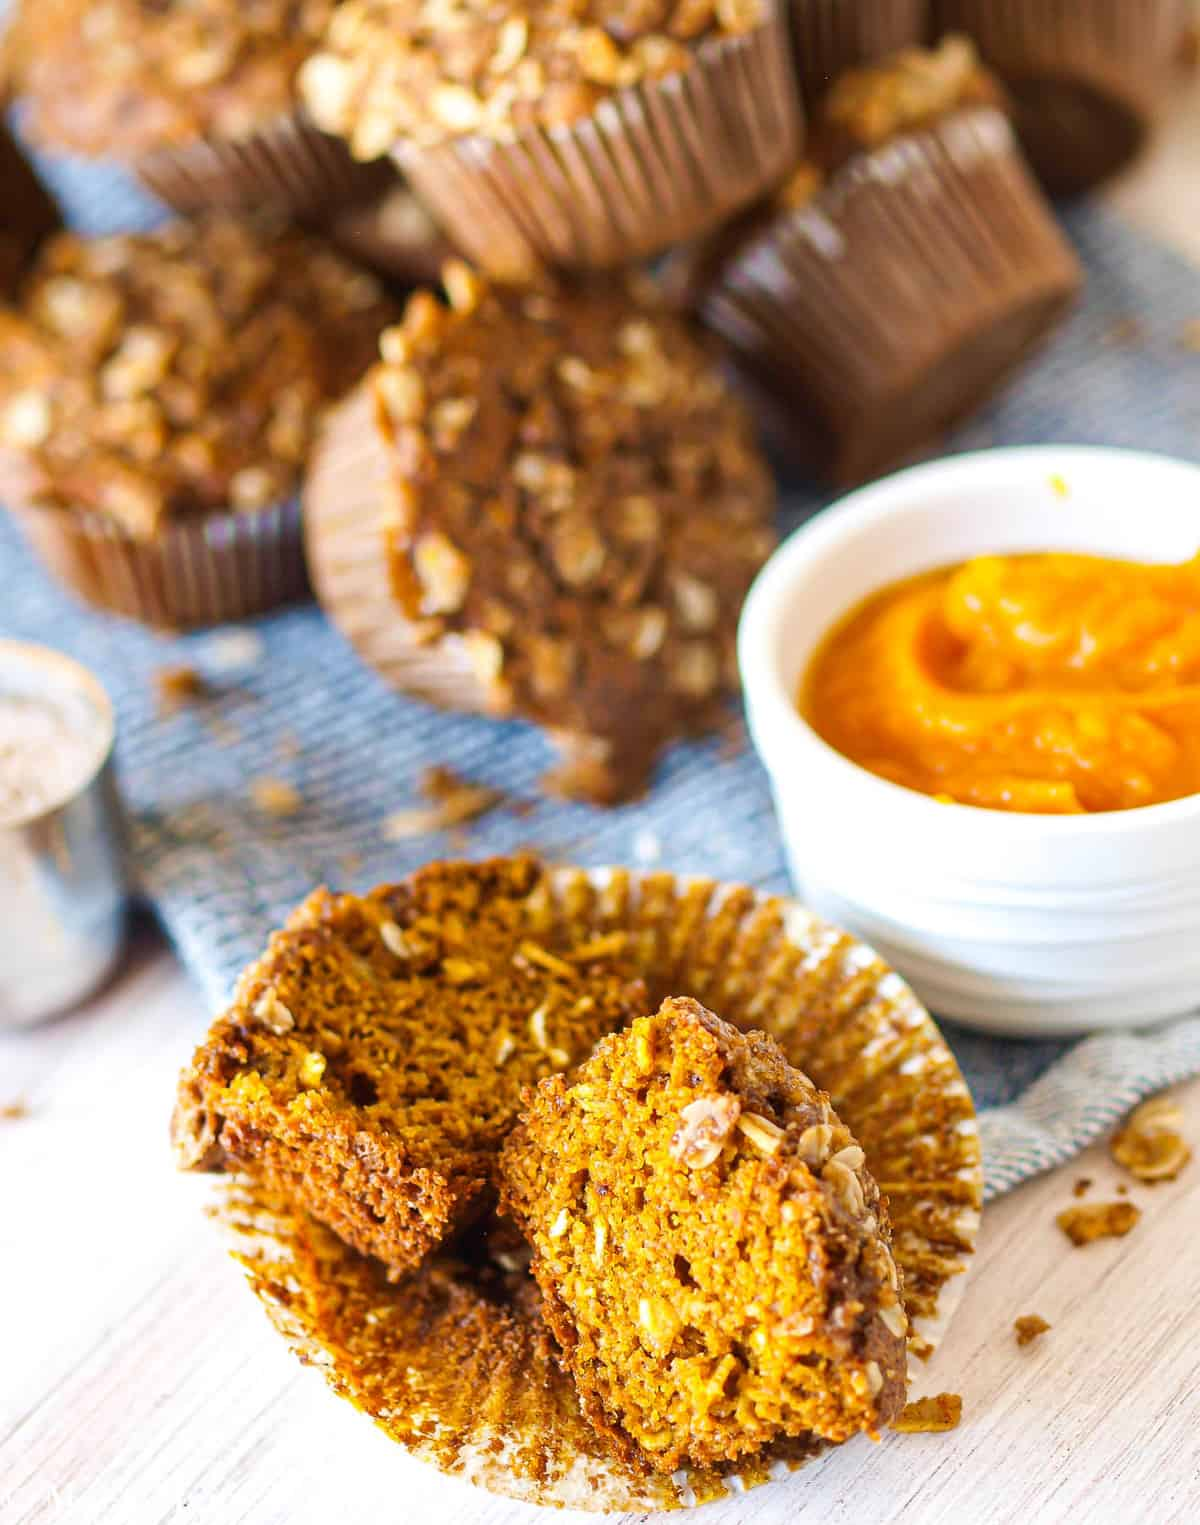 a gluten-free pumpkin muffin split in half in front of a pile of muffins